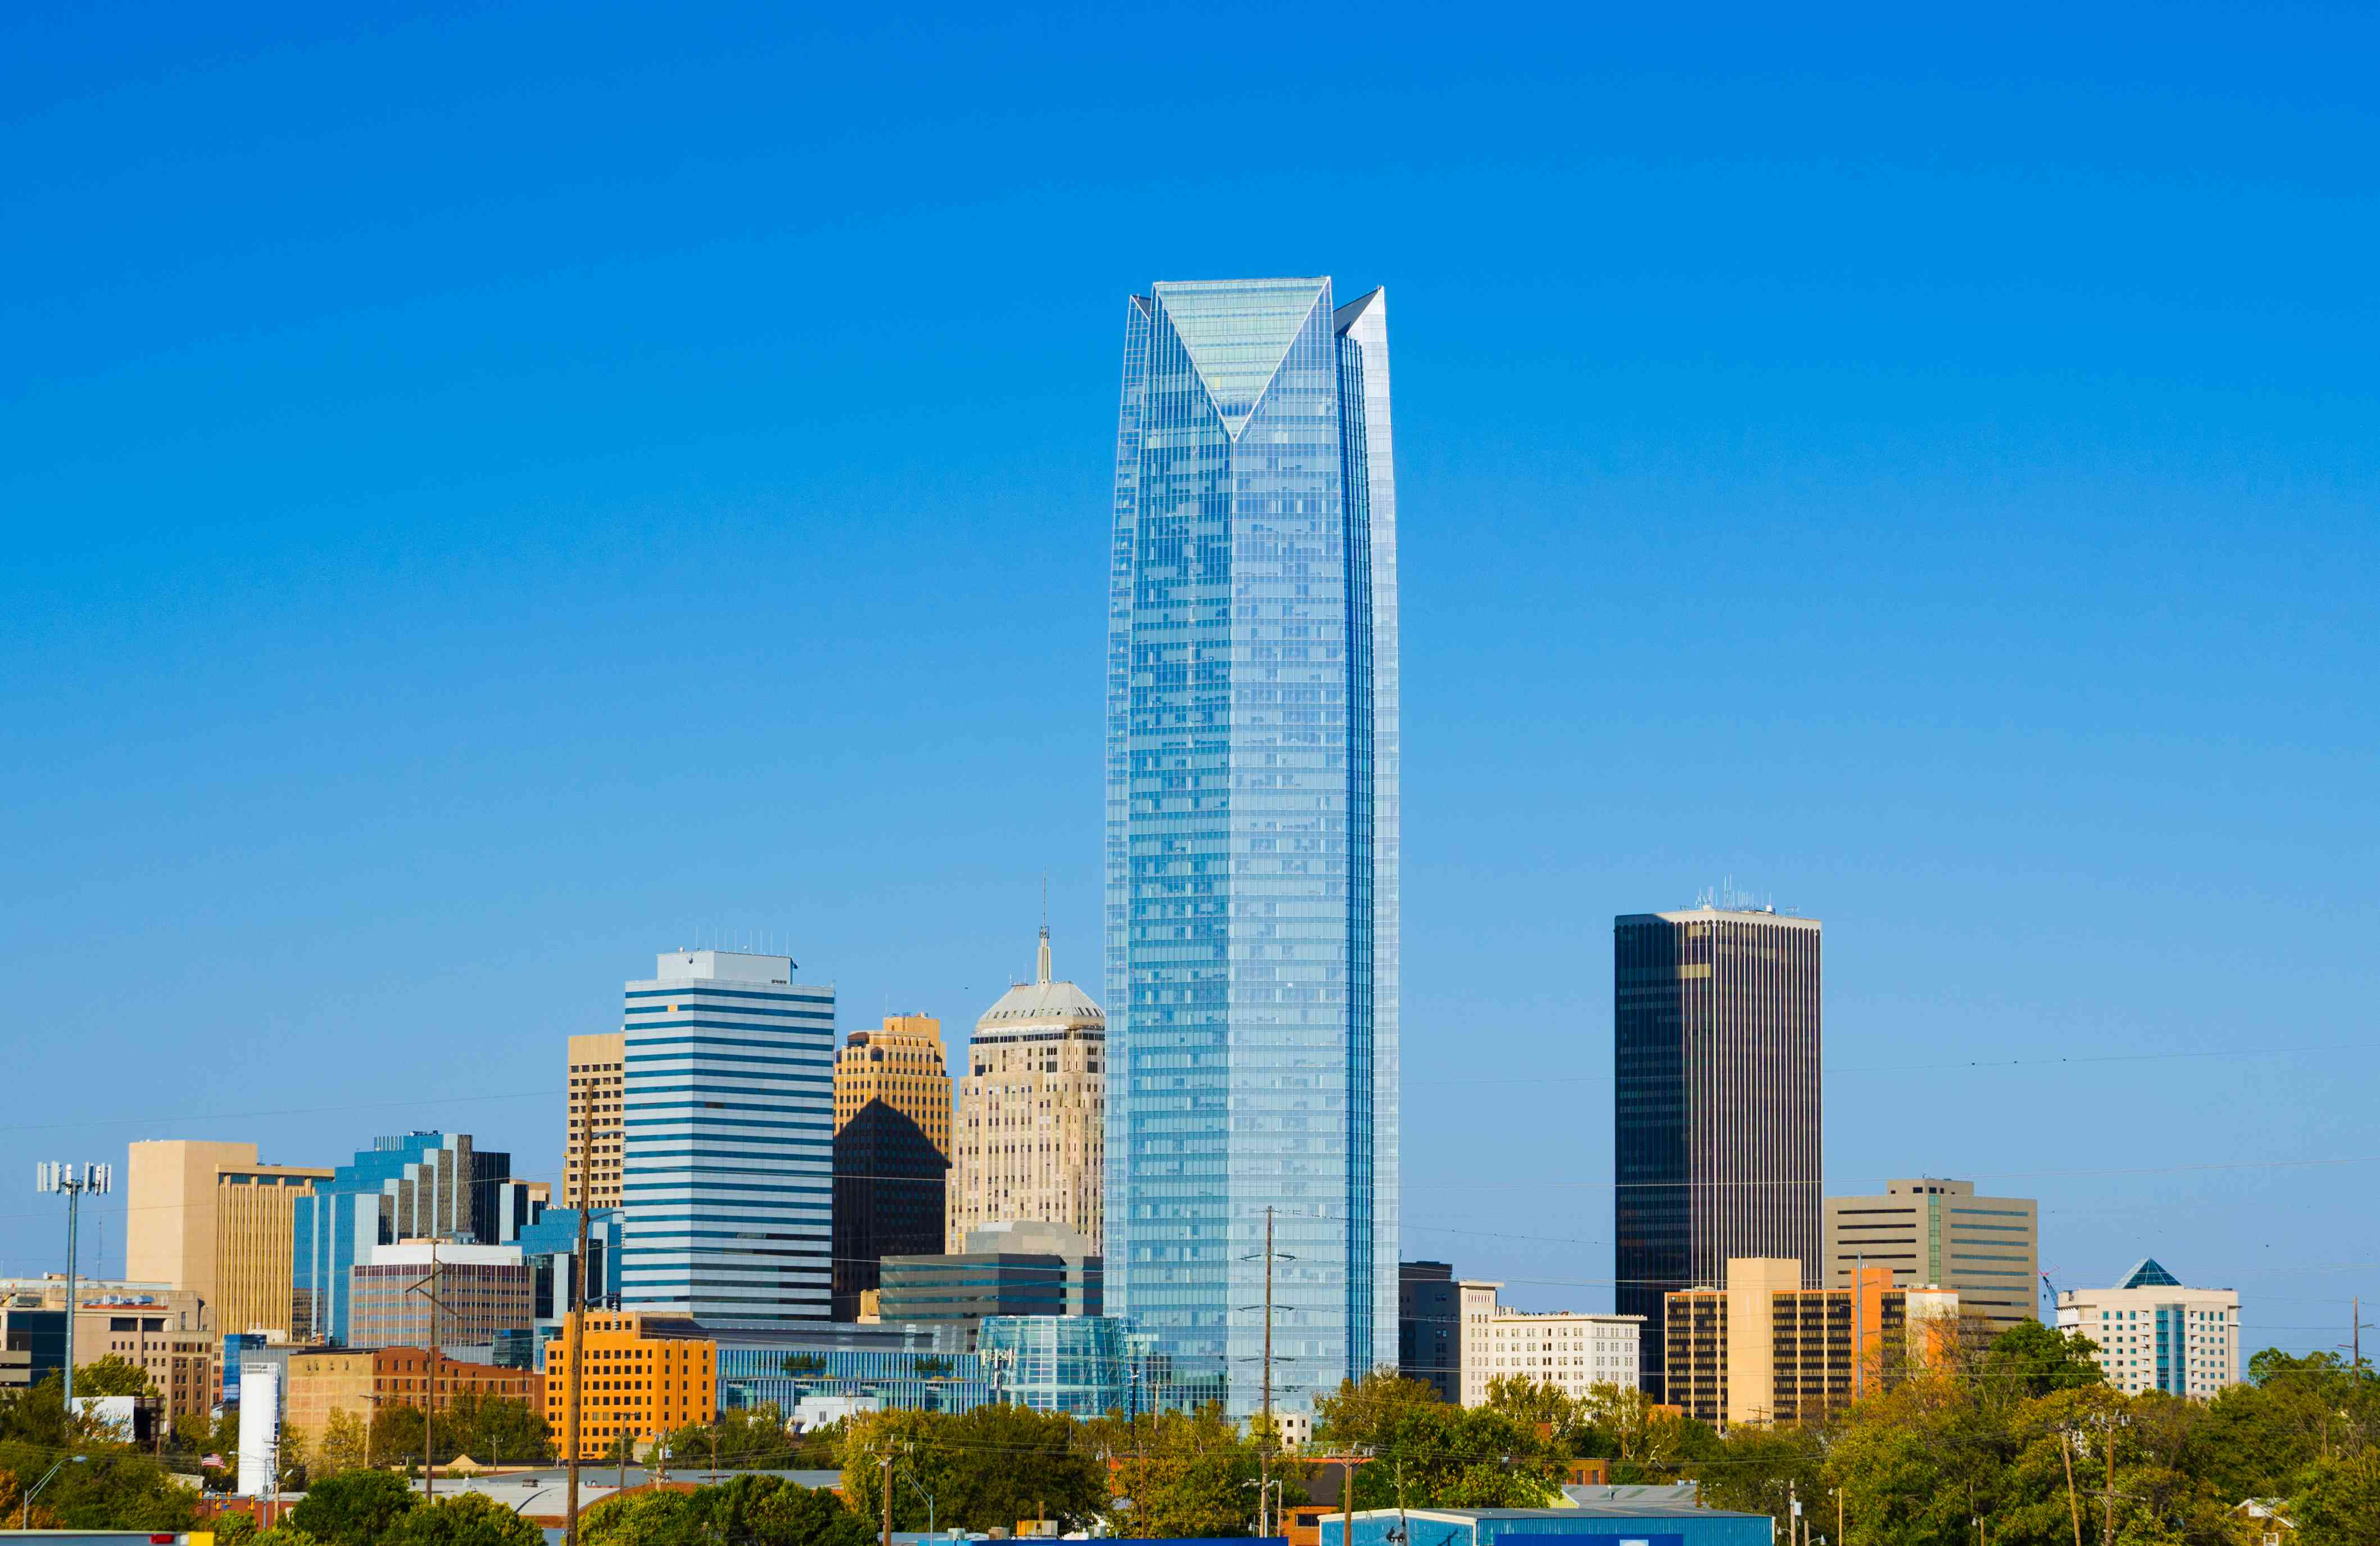 Oklahoma City downtown skyline, featuring the recently constructed Devon Tower.